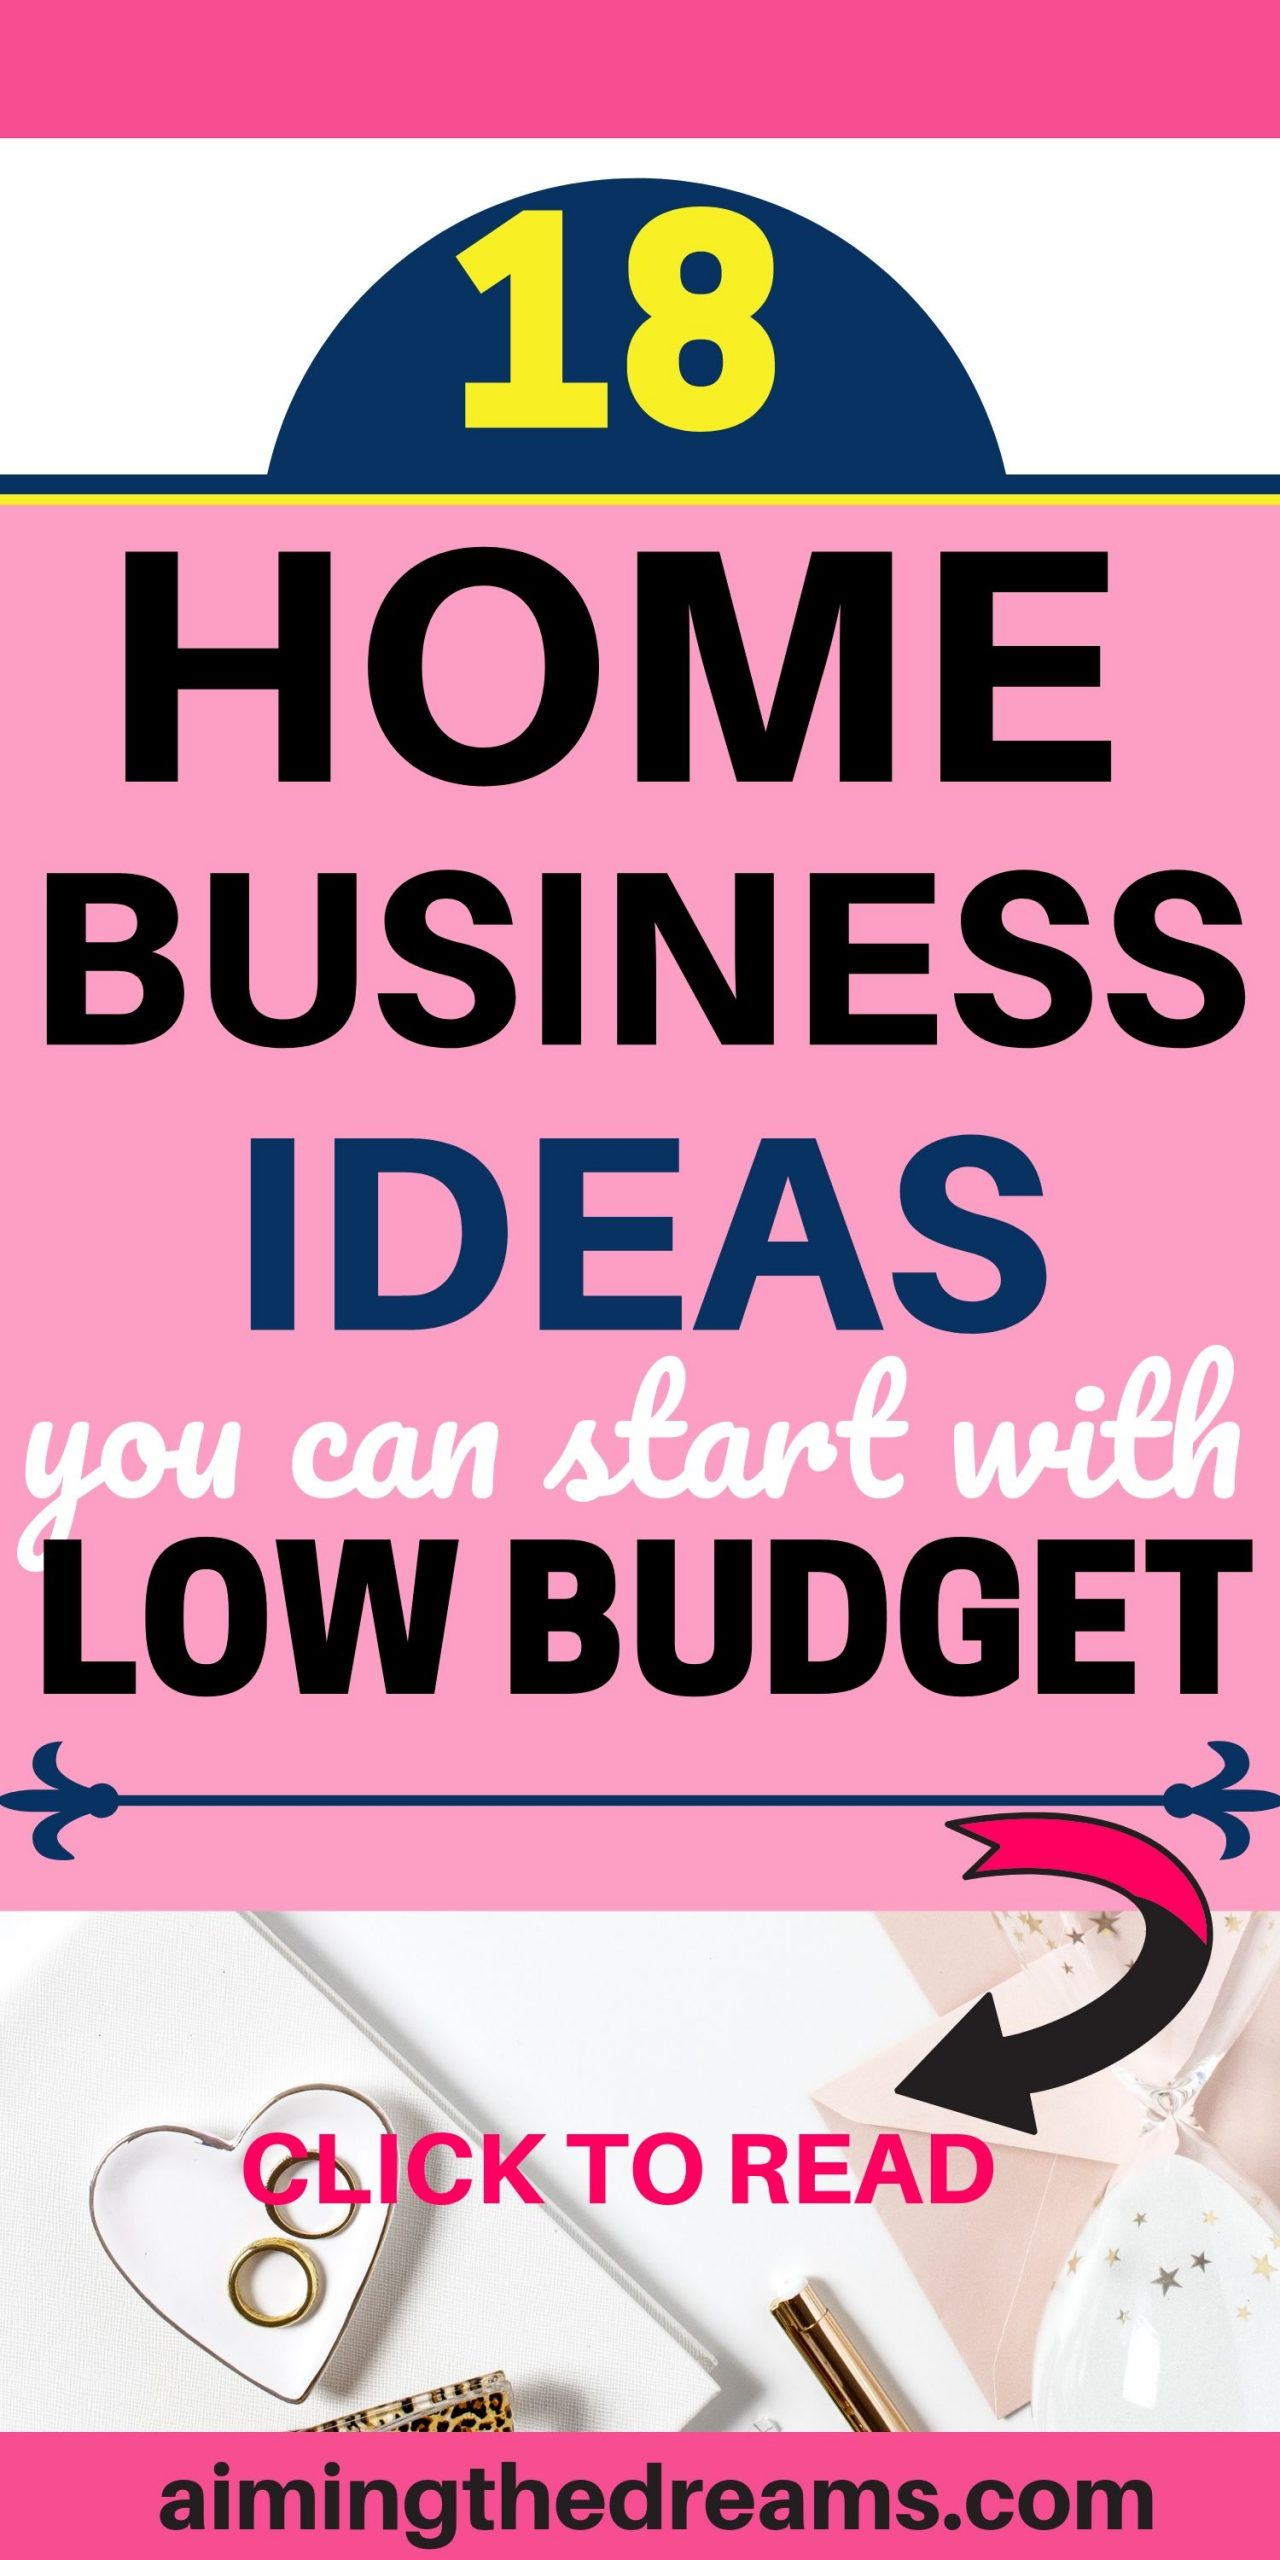 18 home business ideas you can start with low budget. Side hustle ideas let you make money and work from home.